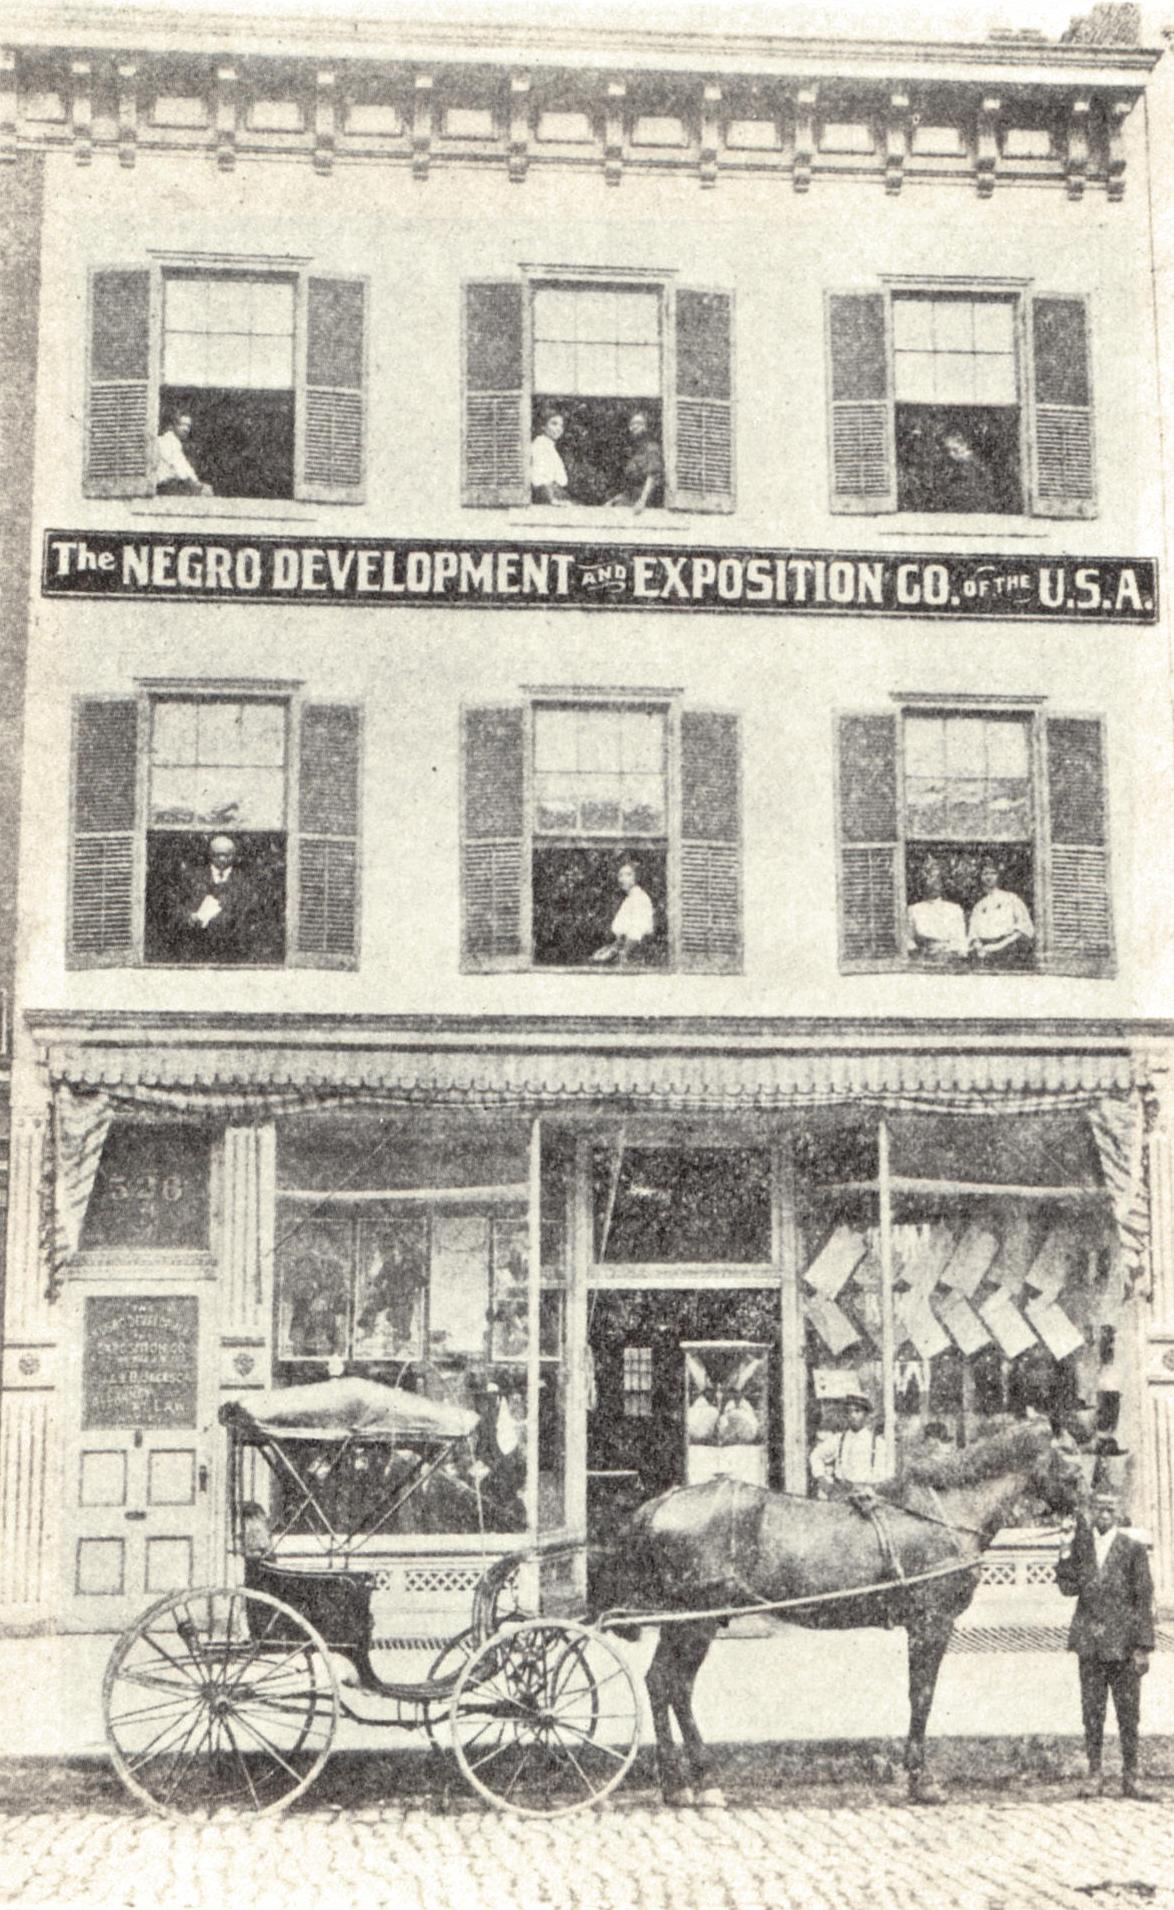 The Richmond headquarters for Jackson's Negro Development and Exposition Company, circa 1907.